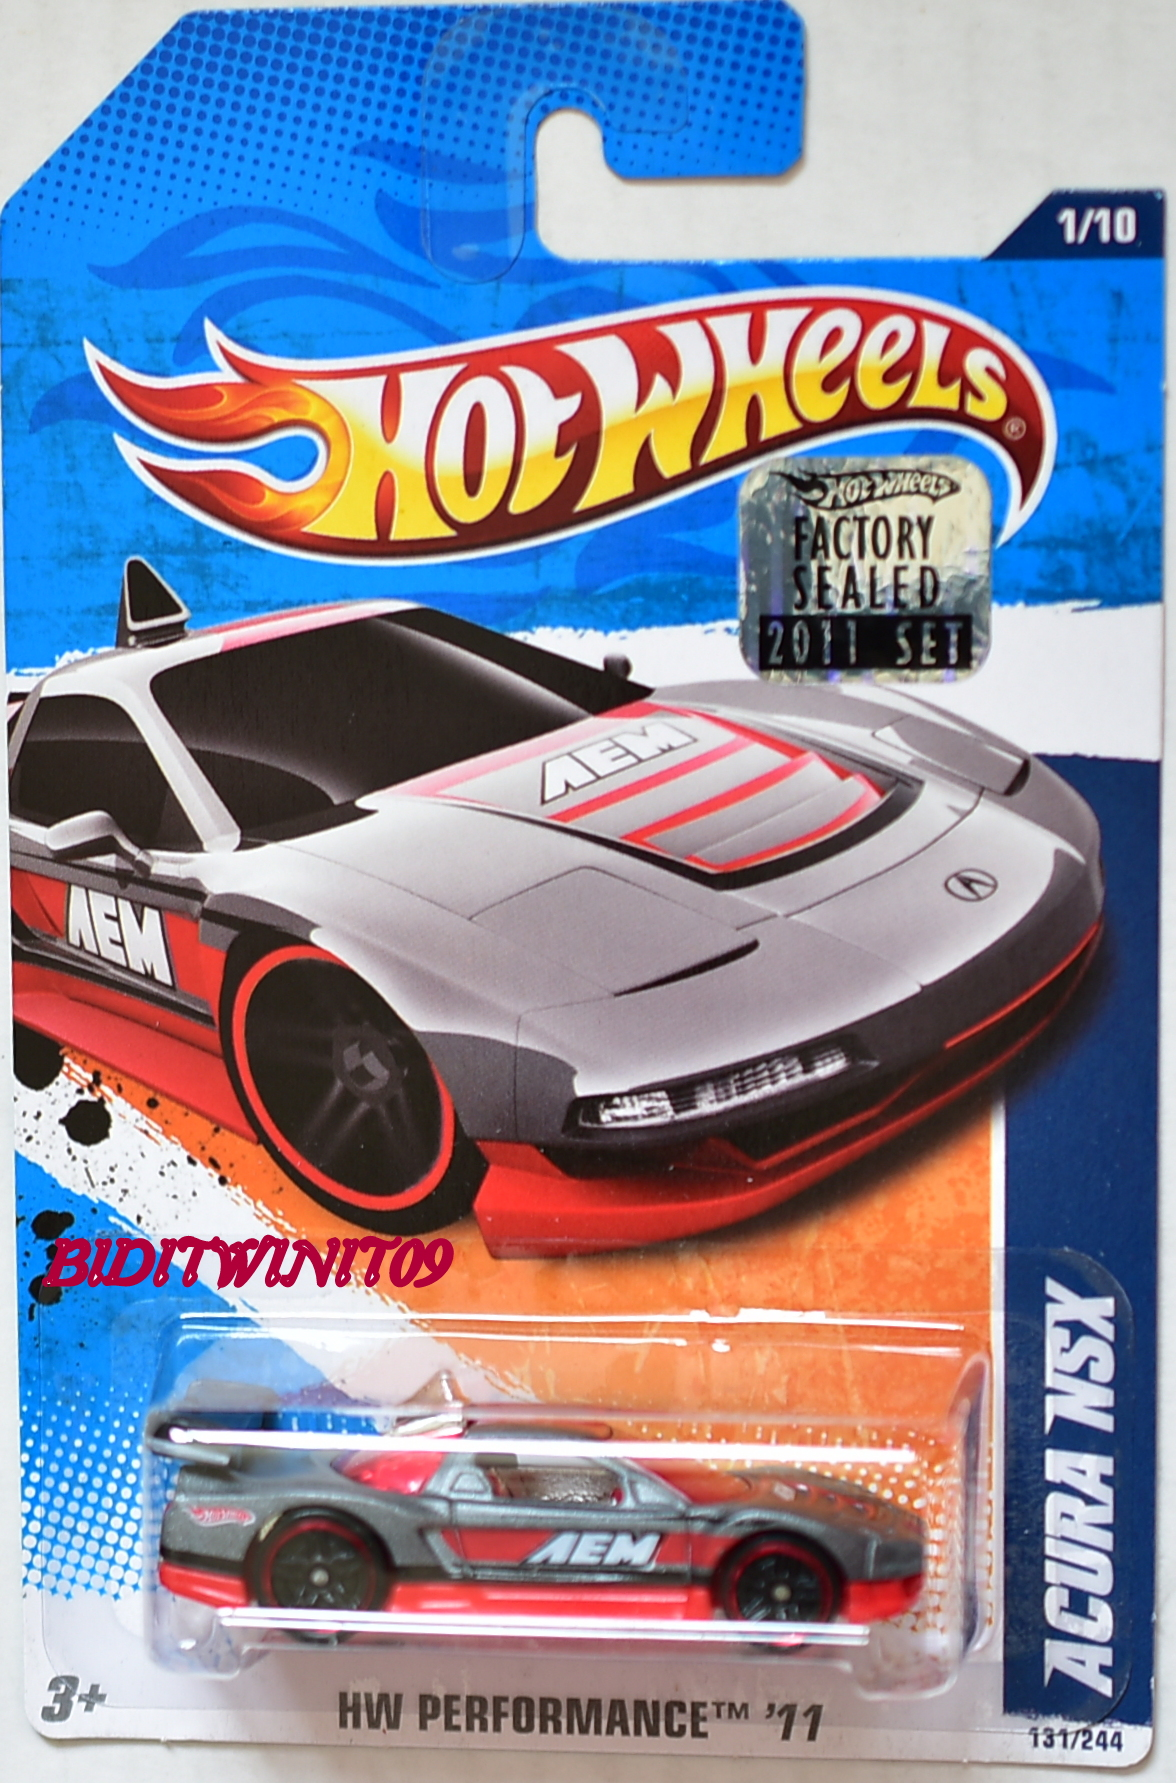 HOT WHEELS 2011 HW PERFORMANCE ACURA NSX FACTORY SEALED